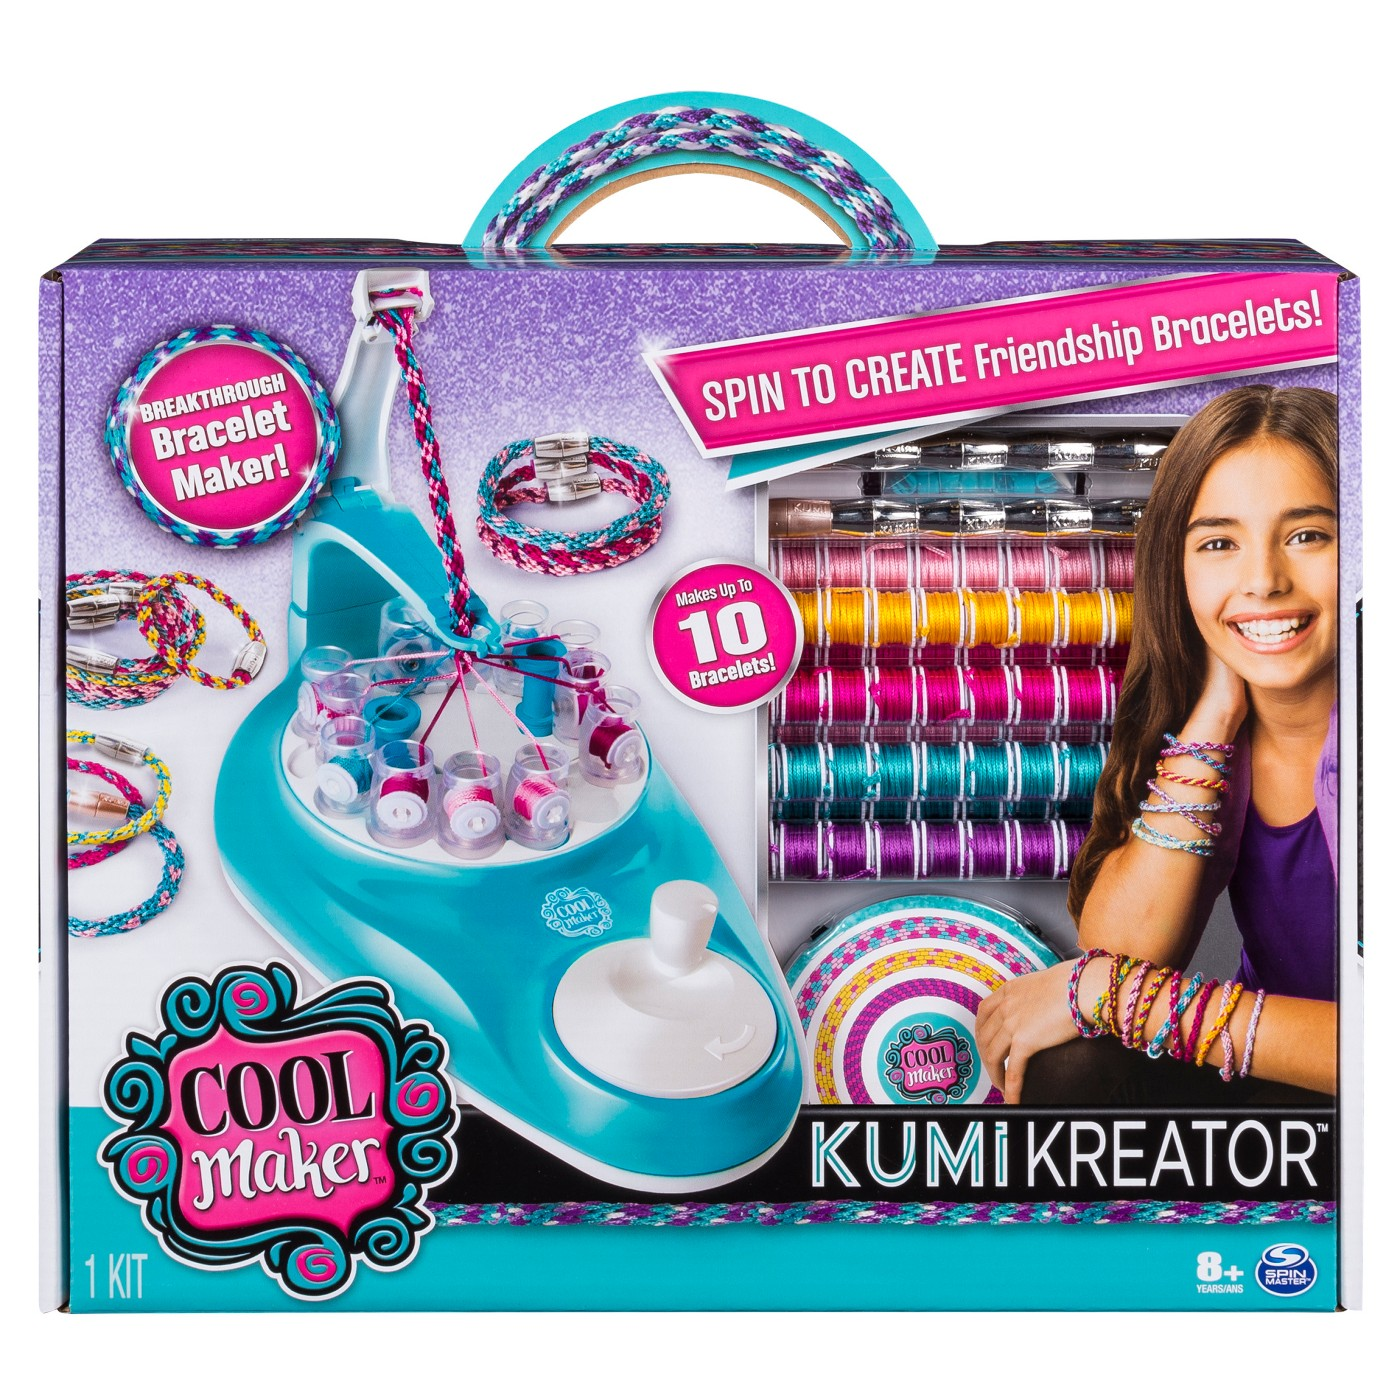 Cool Maker KumiKreator Friendship Bracelet Maker Activity Kit - image 1 of 7